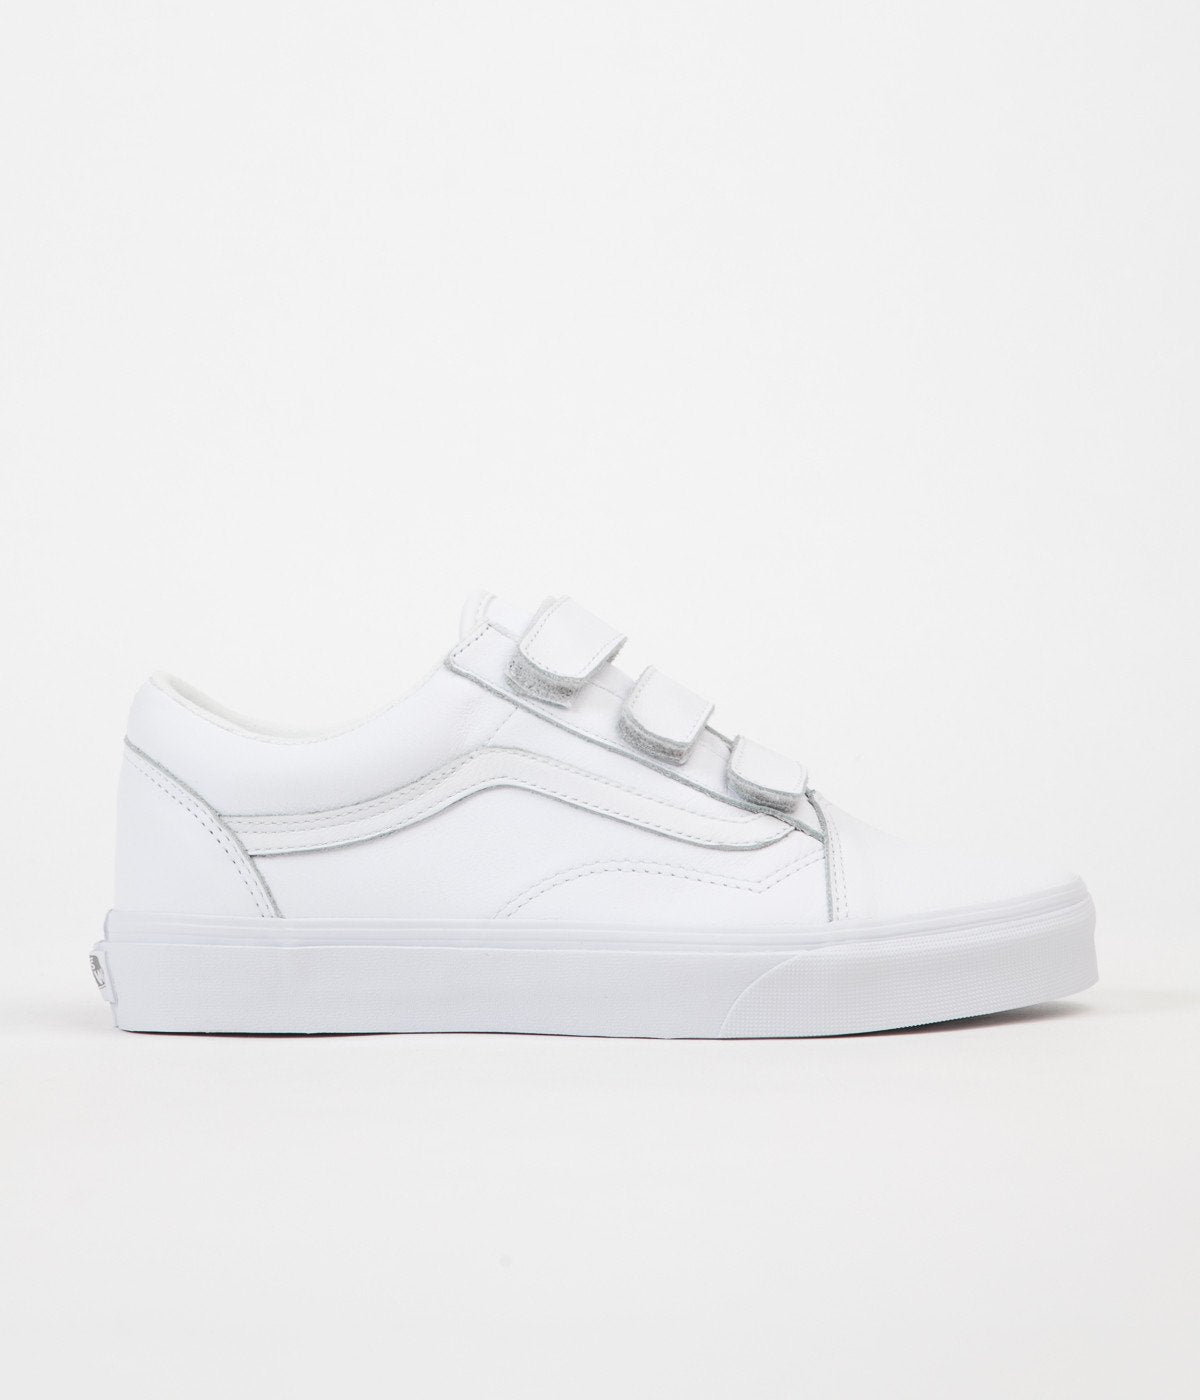 e091438558 ... Vans Old Skool V Mono Leather Shoes - True White ...